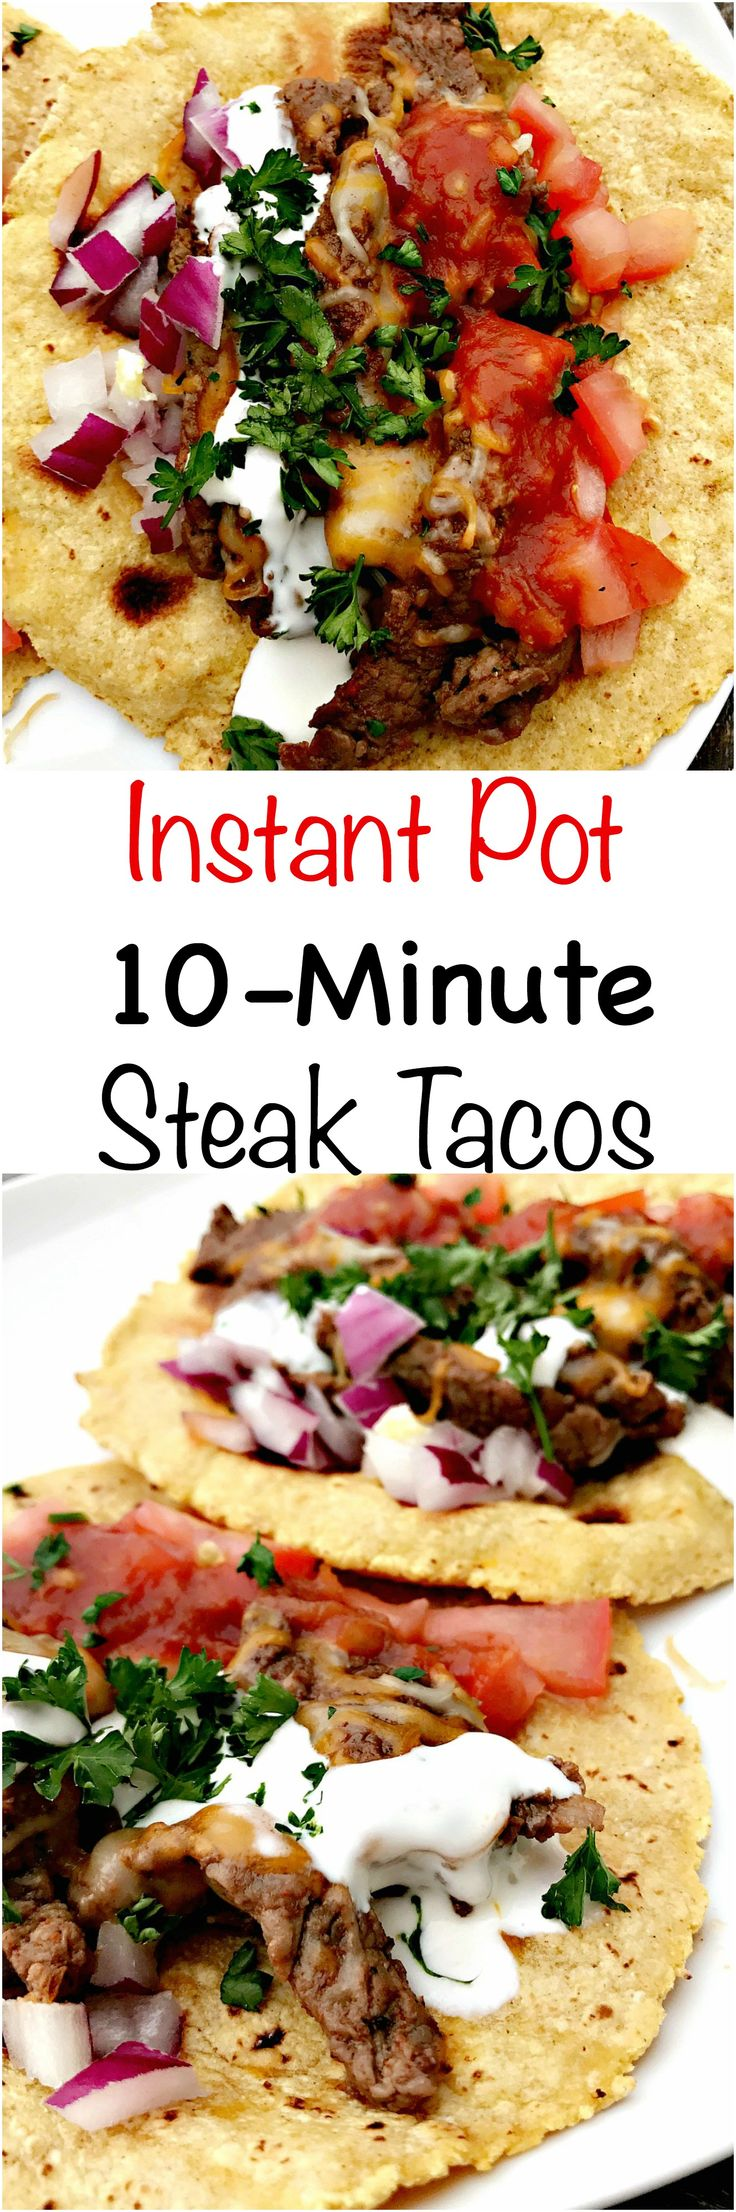 Quick and easy 10-minute Instant Pot steak tacos are a healthy and skinny meal. Tacos are loaded with fresh salsa, cilantro, and juicy steak.